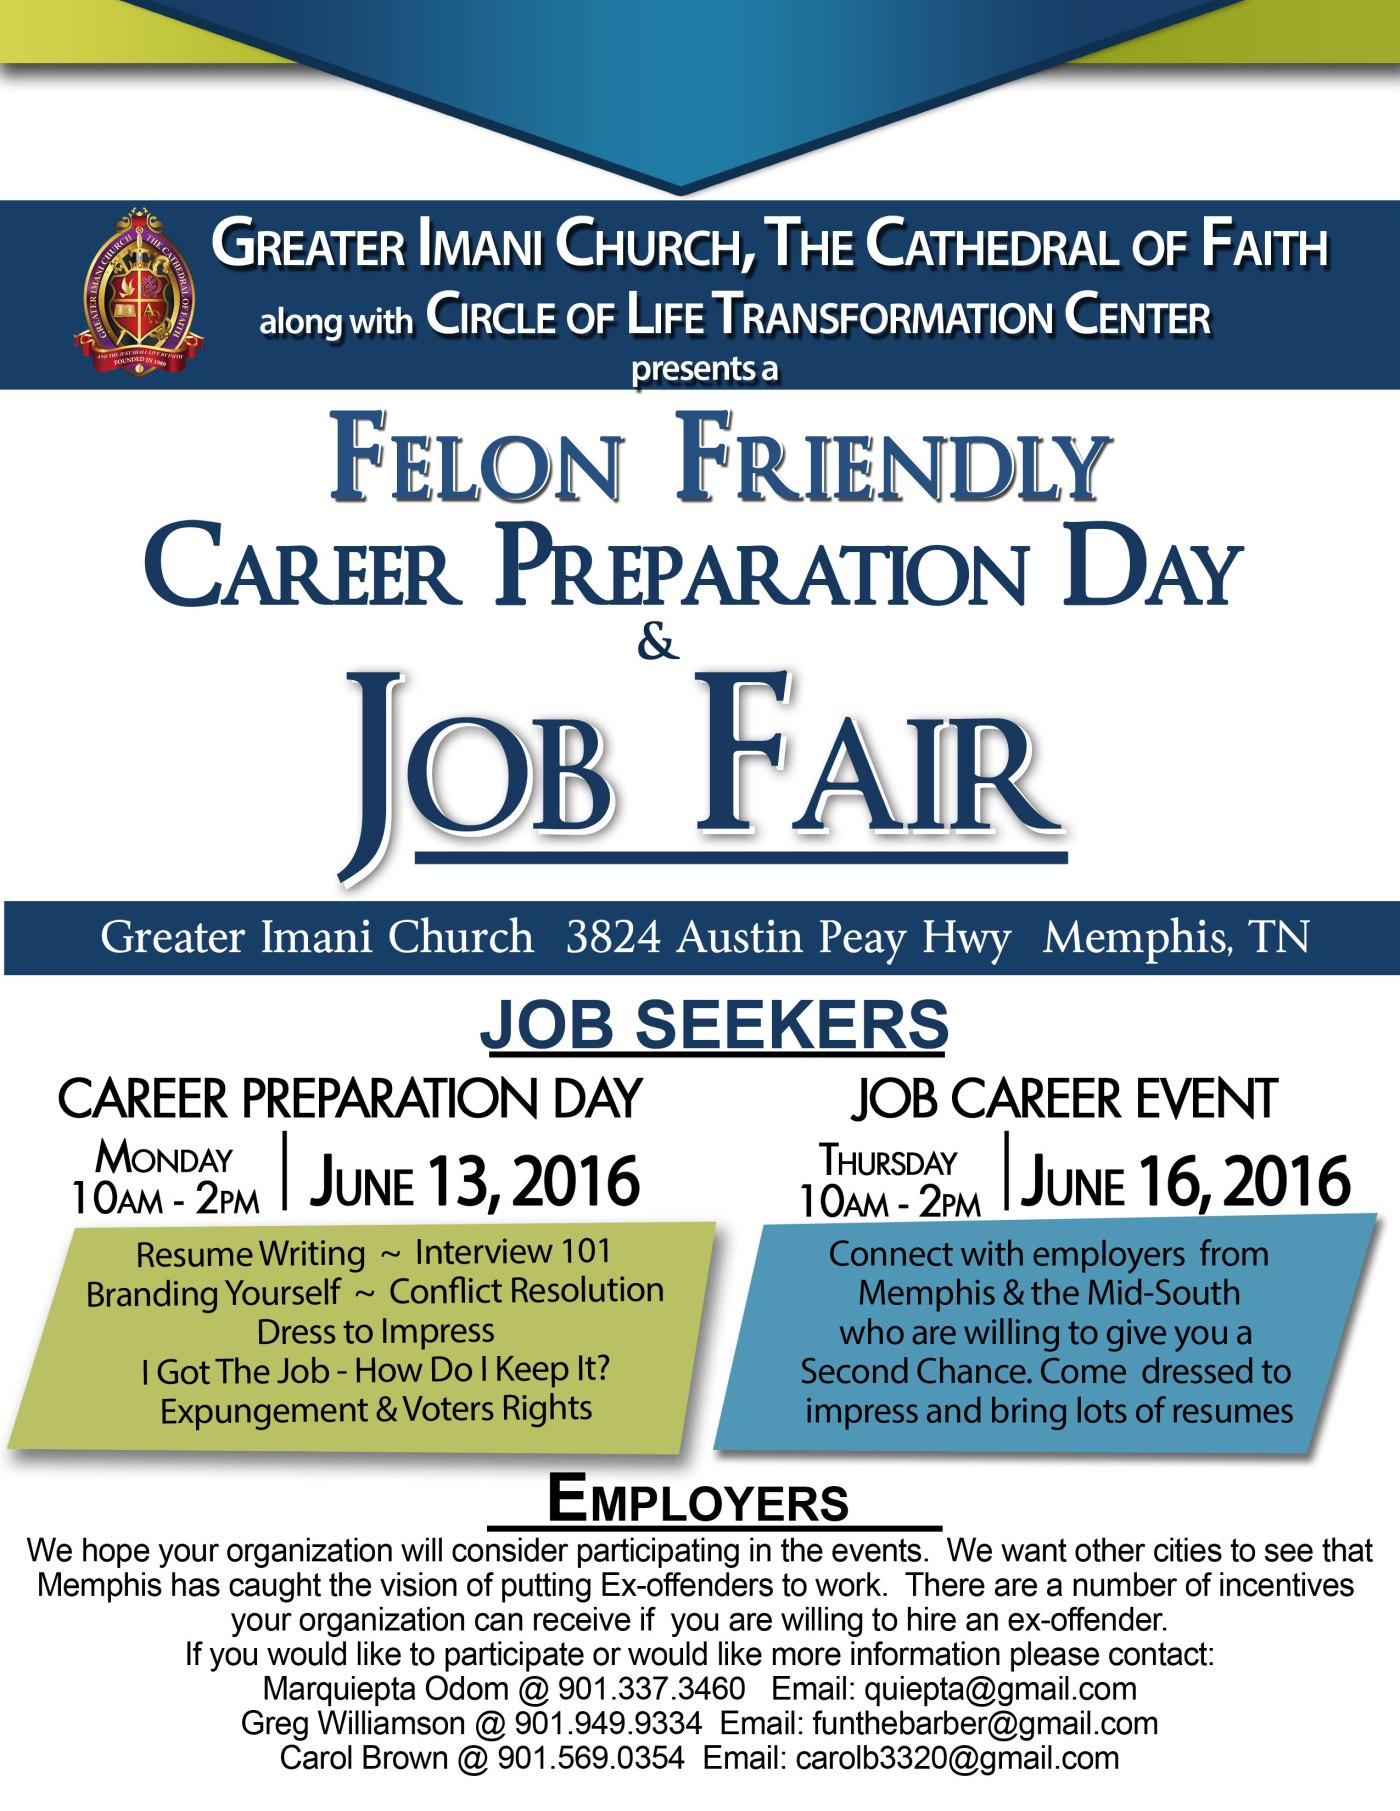 felon friendly job fair day event job career news from the felon friendly job fair 2 day event job career news from the memphis public library